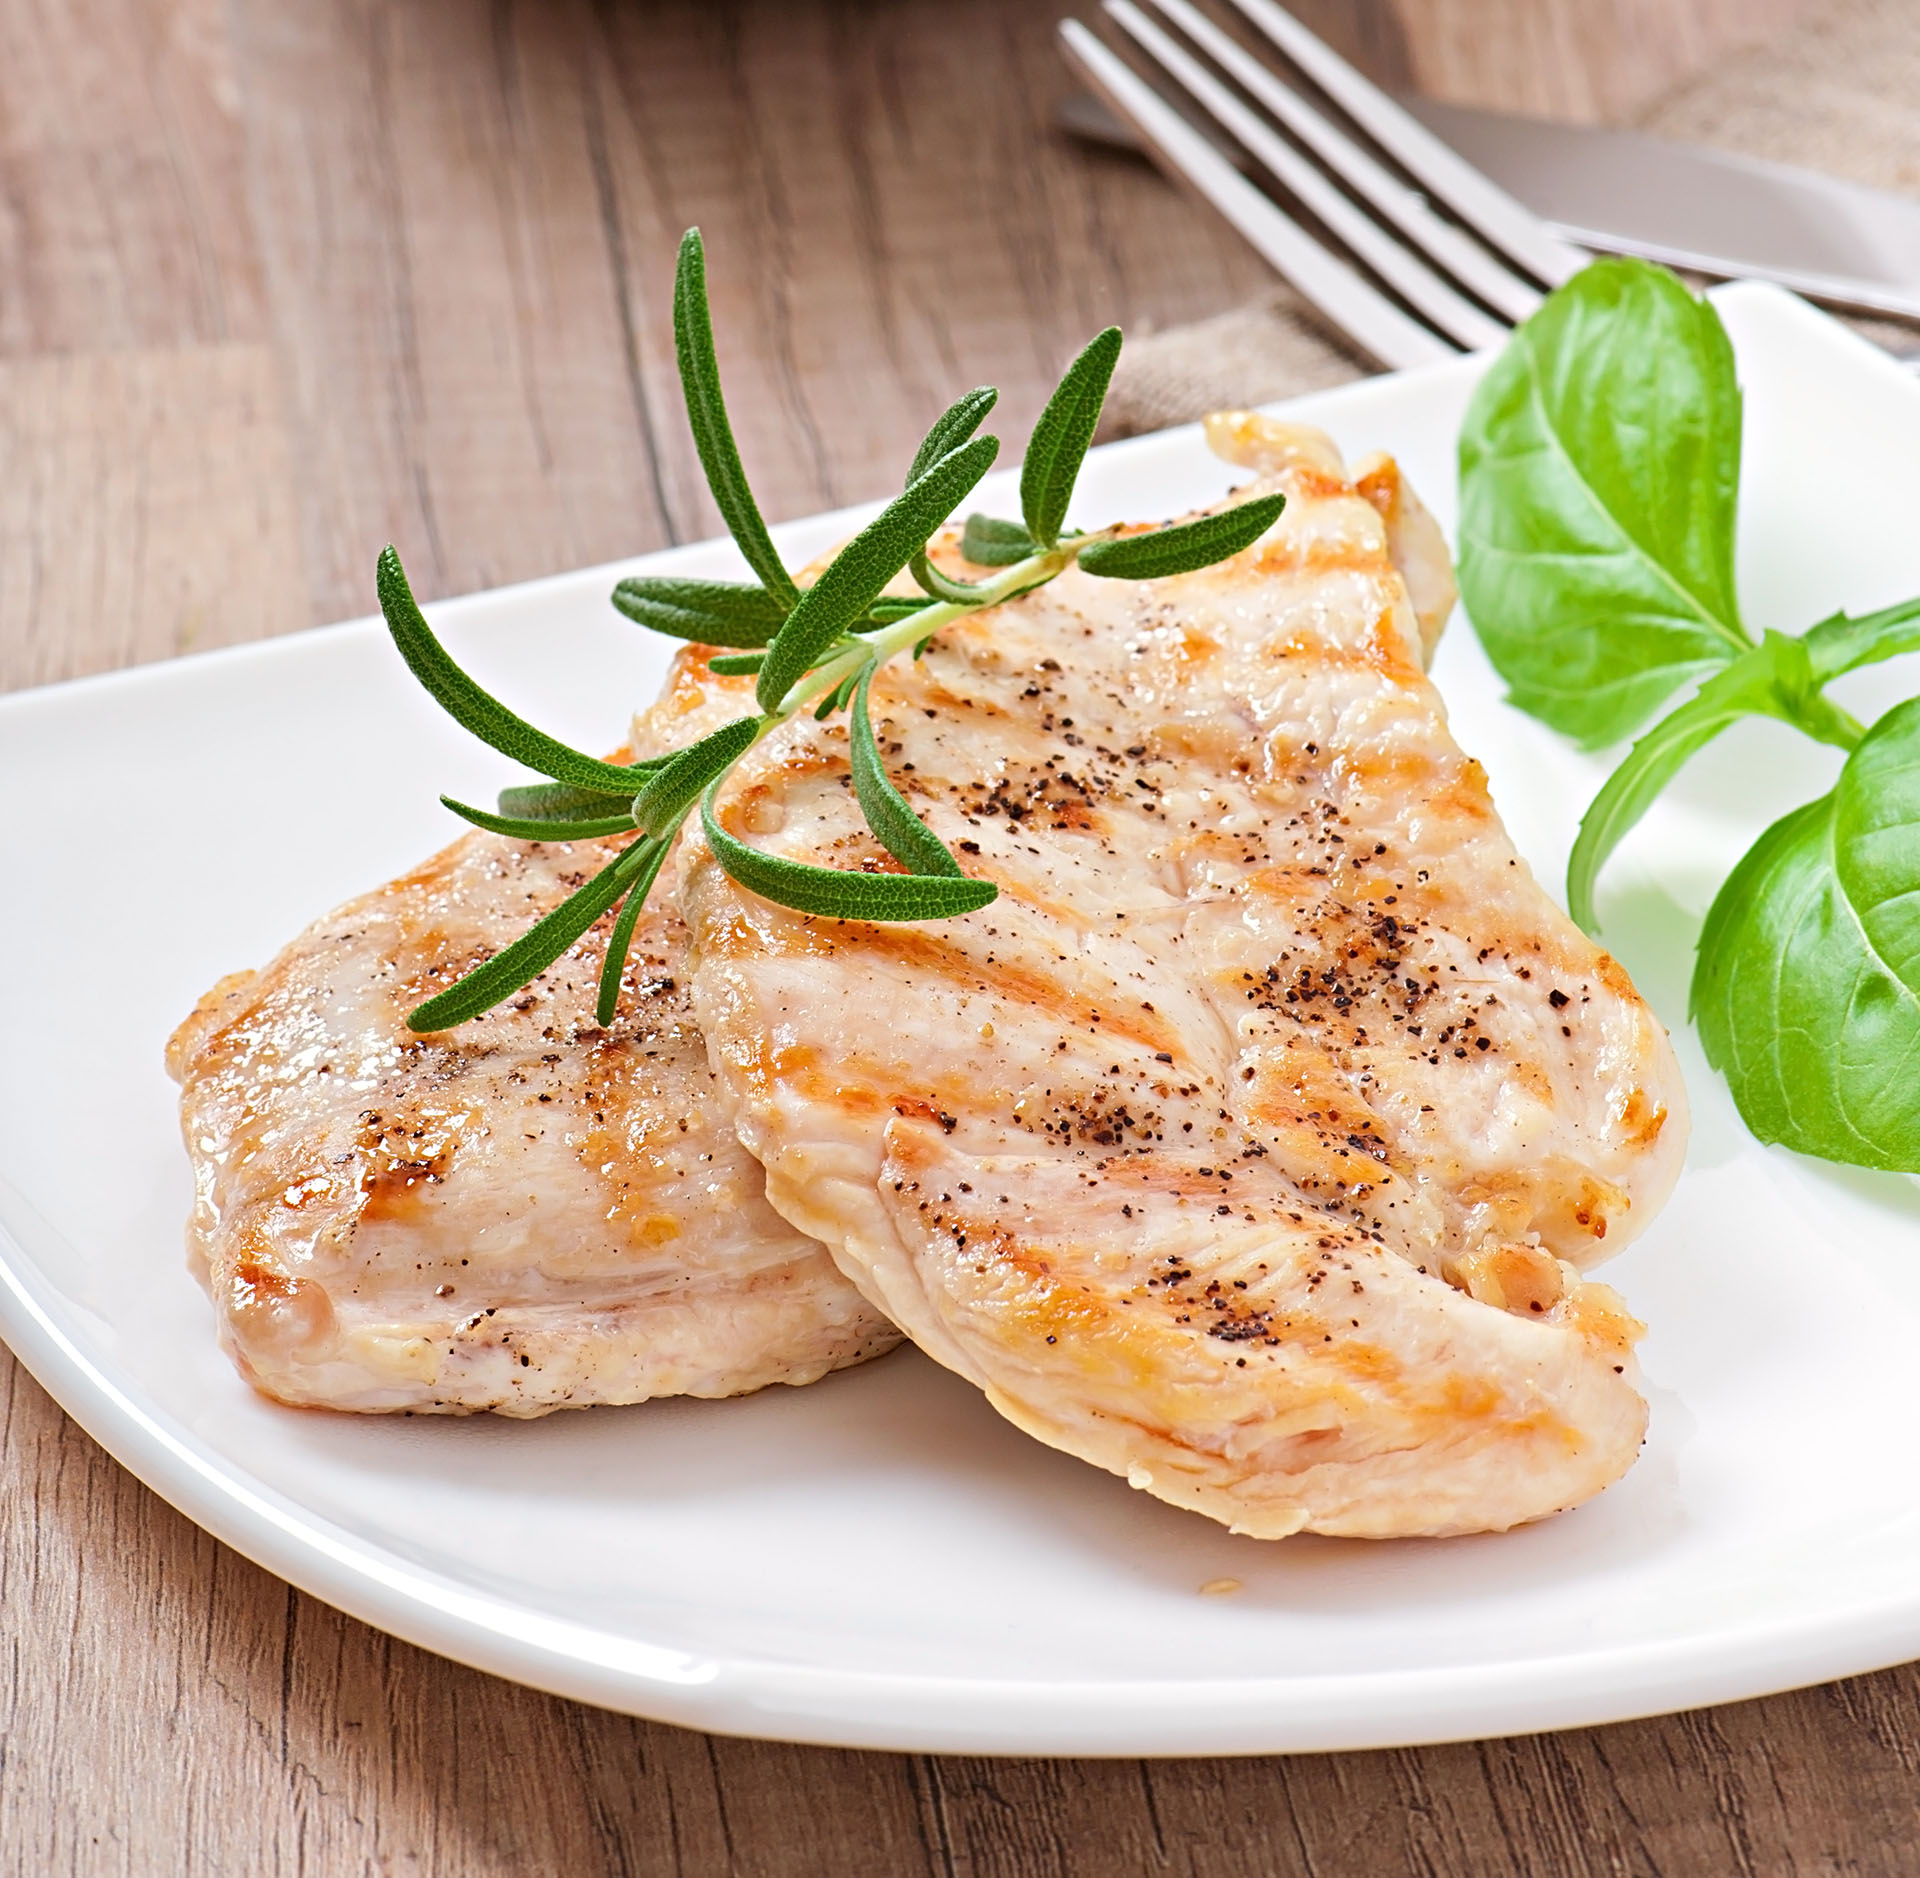 Roasted Chicken Breasts with Lemon Herbs